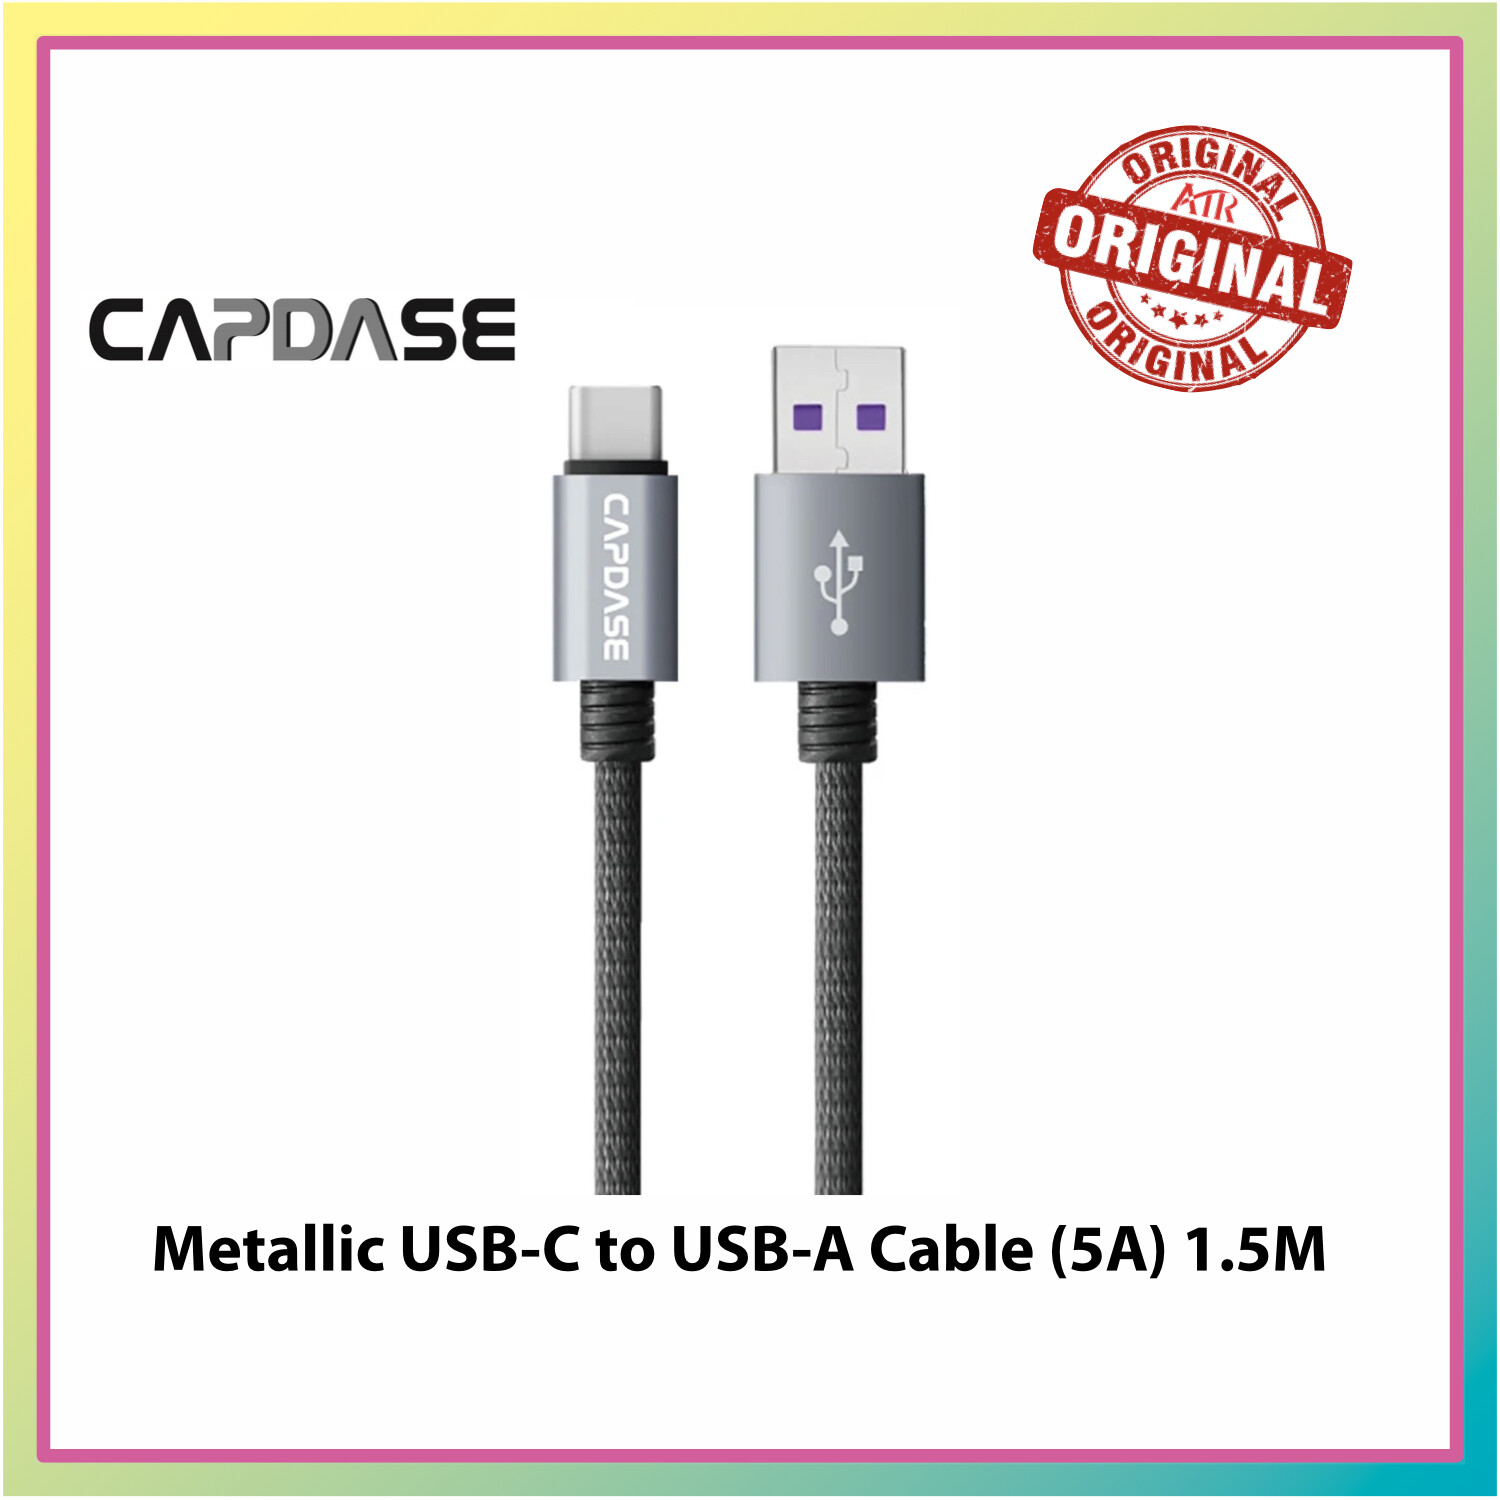 Capdase Metallc CASVQ-5A USB-C TO USB-A Sync And Charge Cable 1.5M (5A)